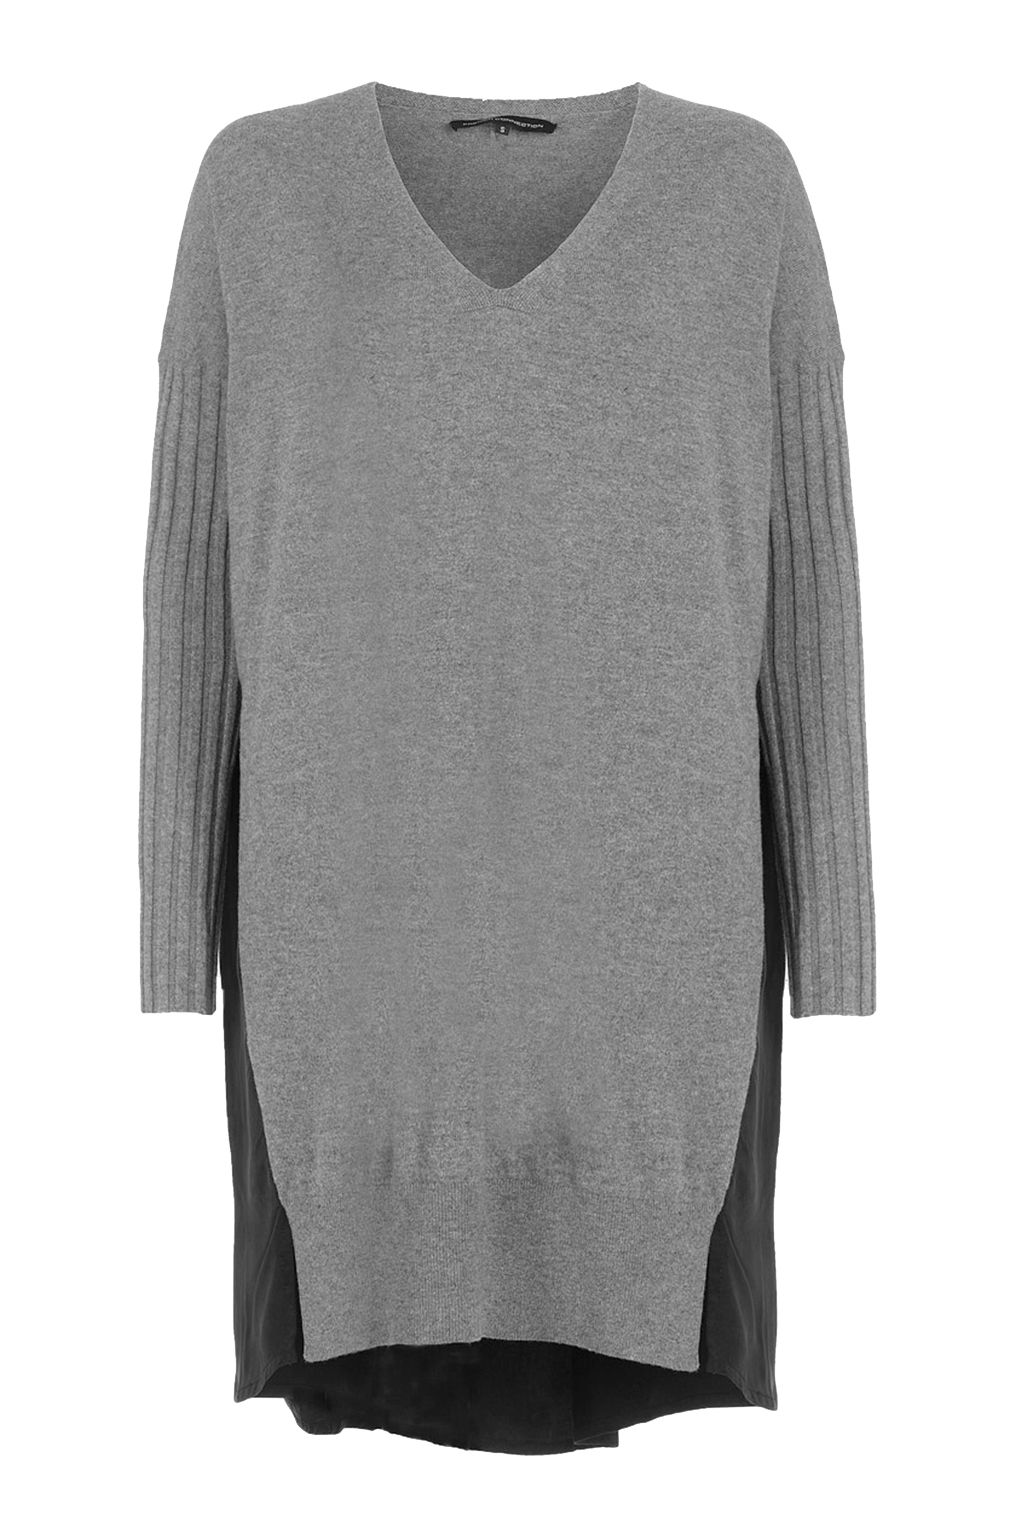 French Connection Aries Knits Wool Jumper Dress, Grey